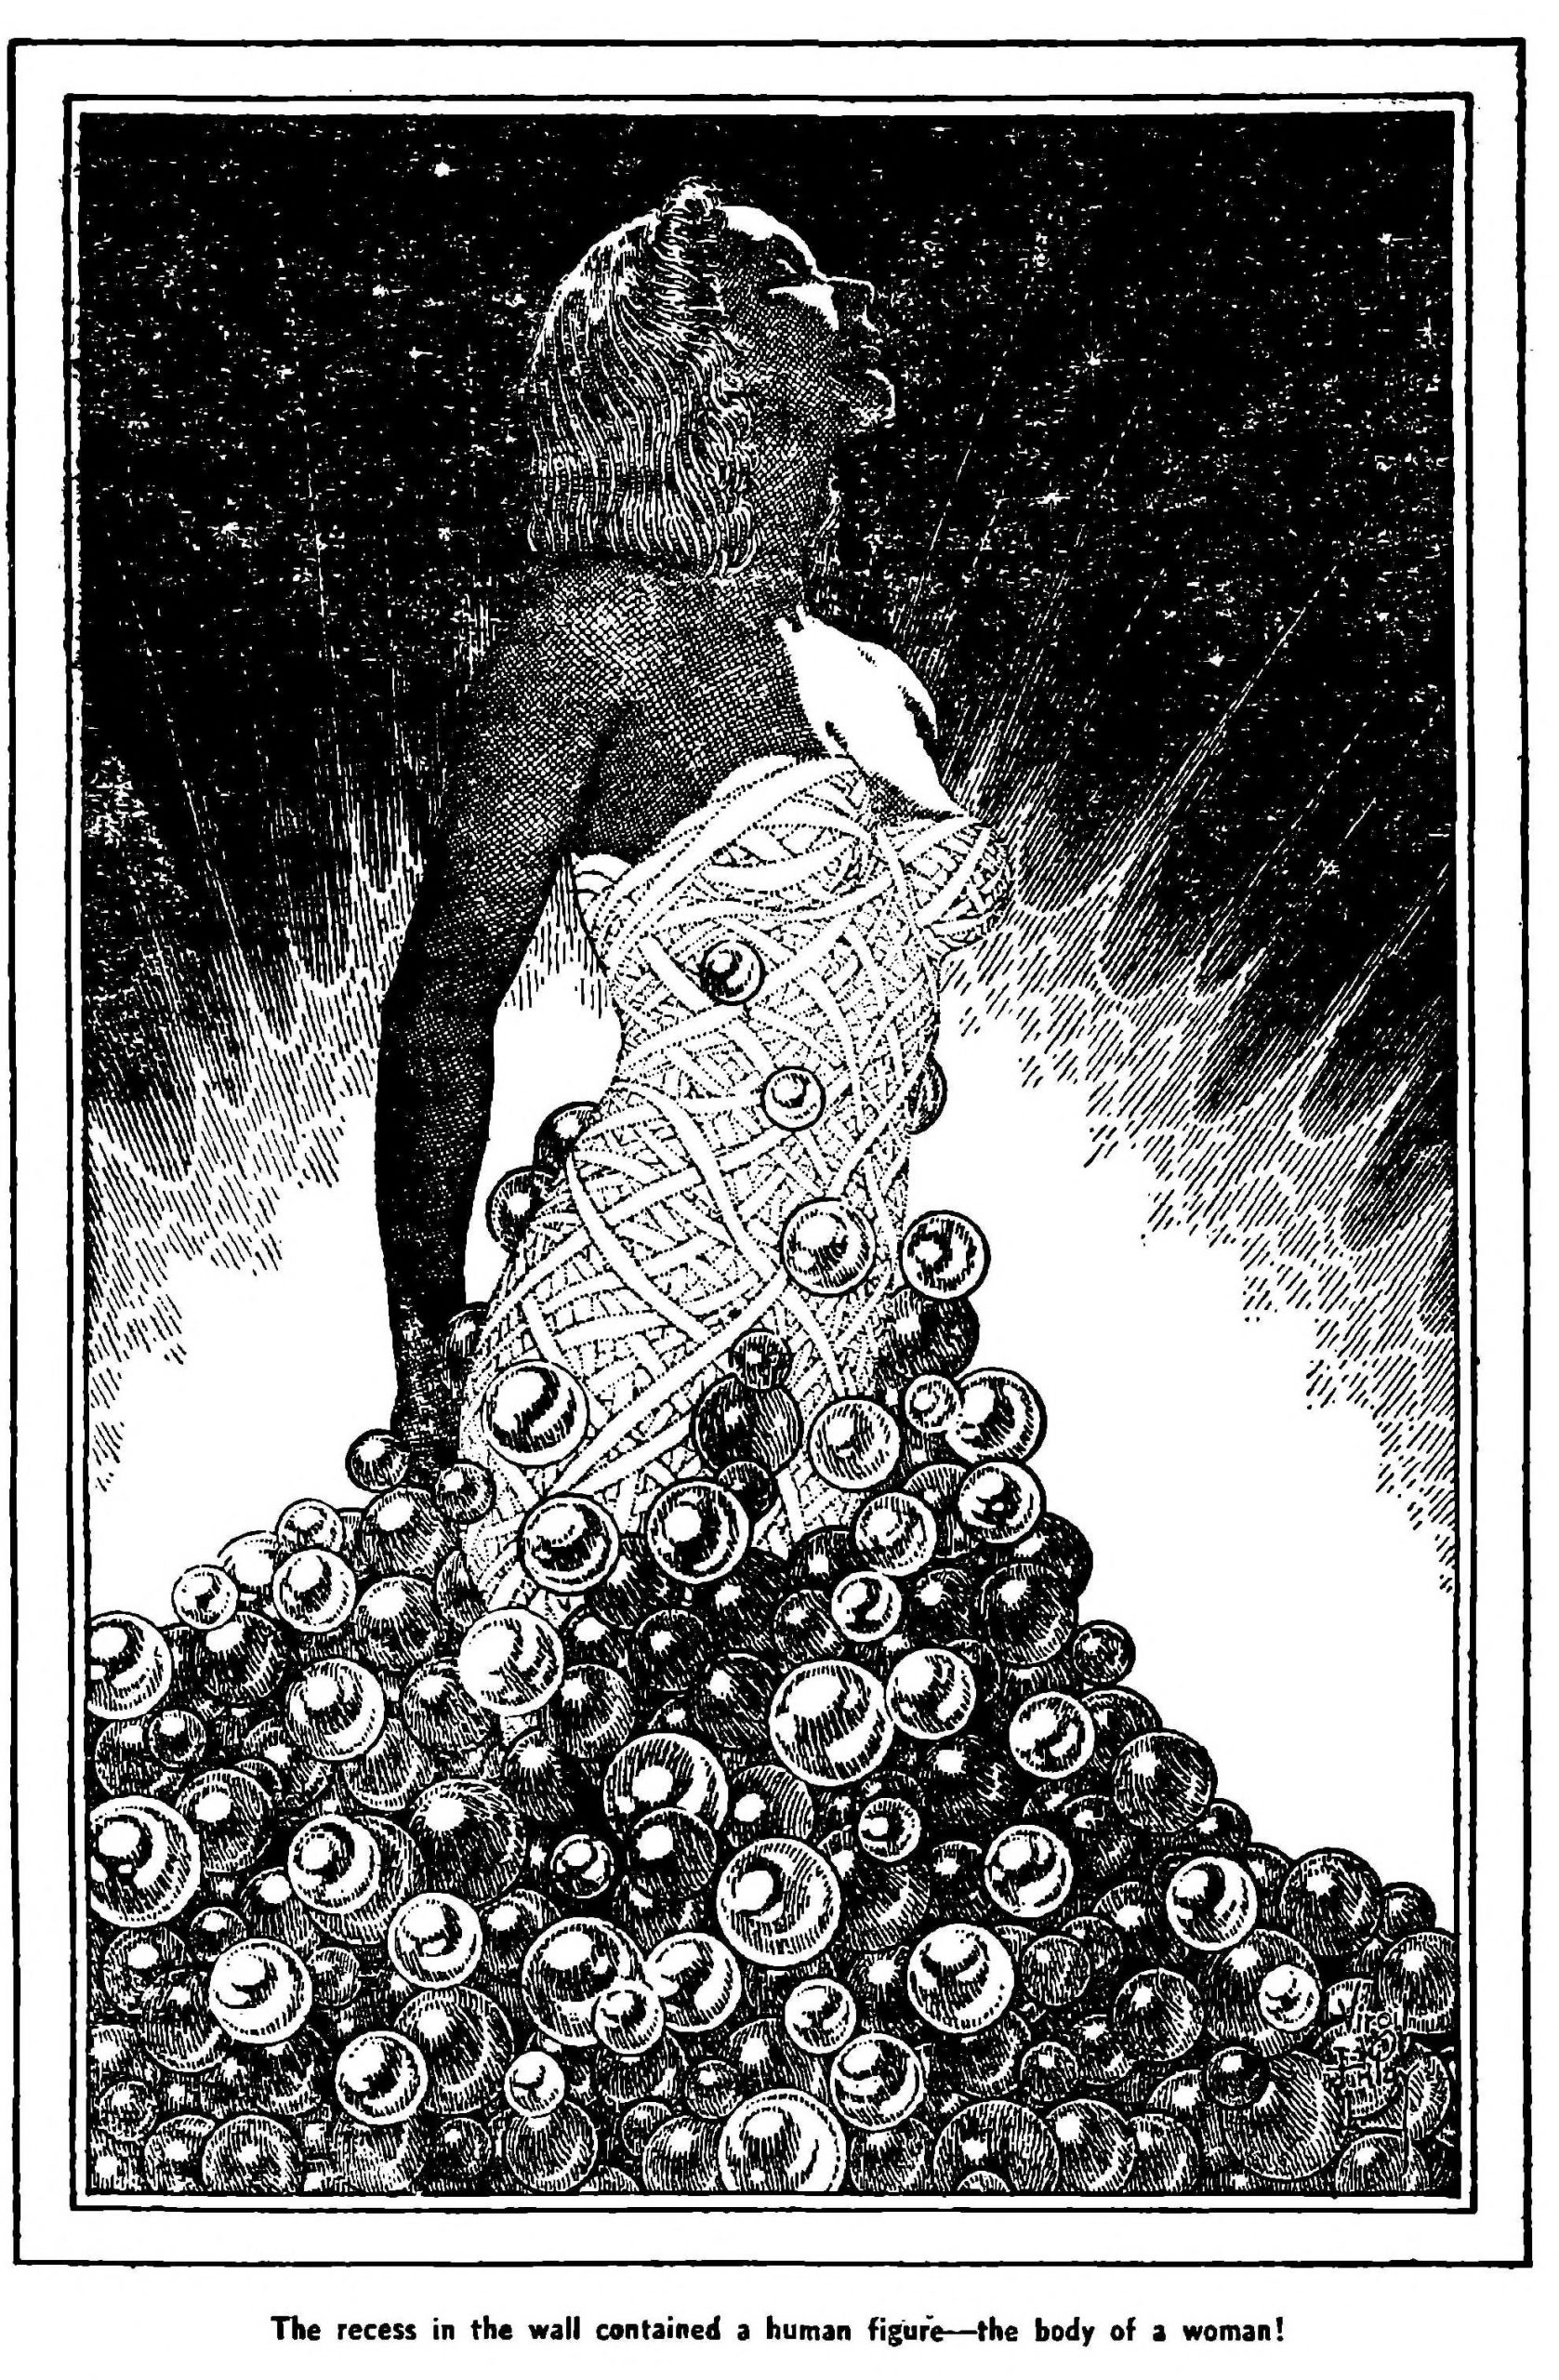 A wrapped woman in a tower of bubbles in an illustration by Virgil Finlay.